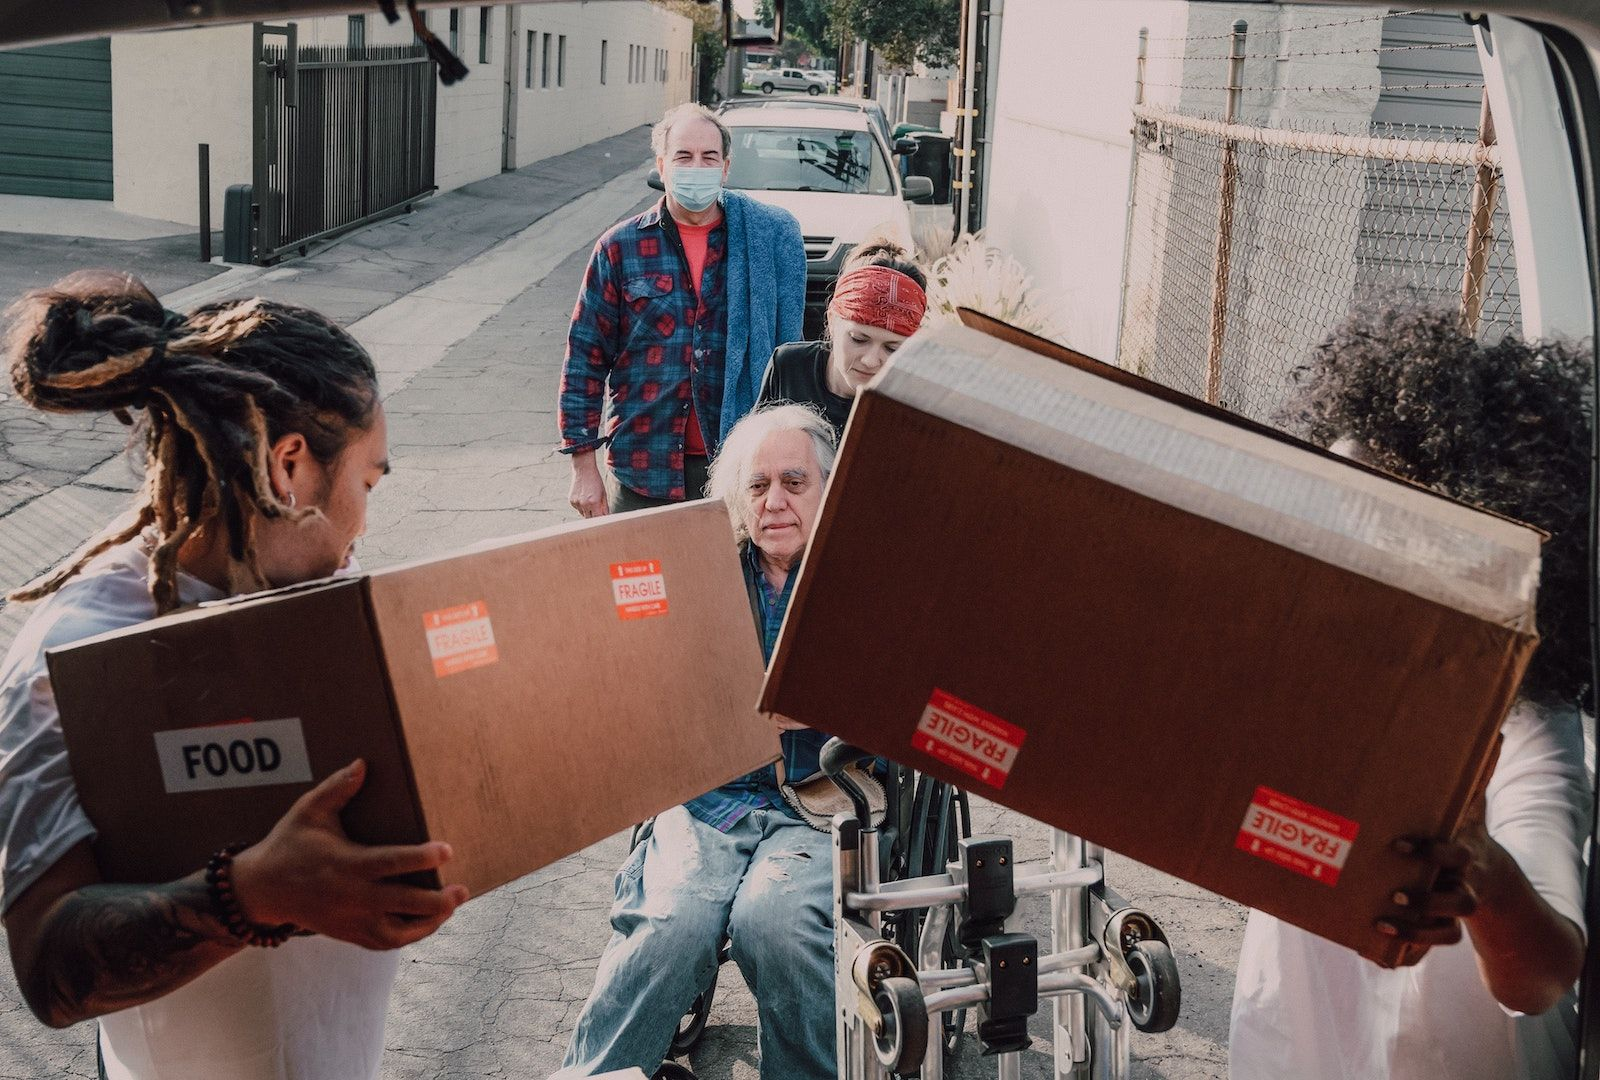 A group of volunteers unloading and handing boxes of food to an elderly individual in aa wheelchair.